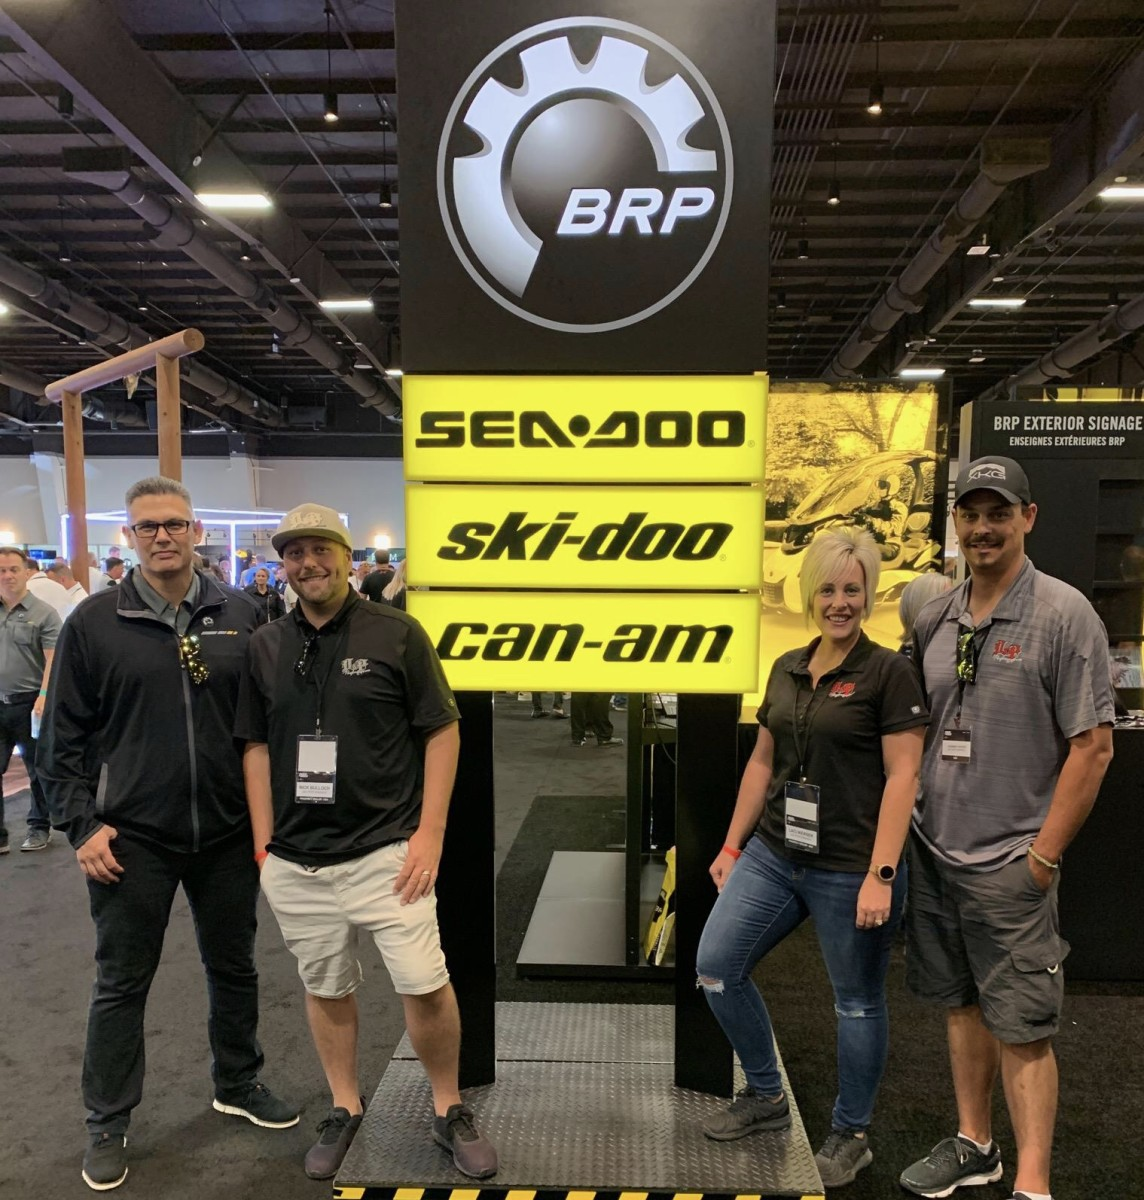 A new BRP dealer, D & P Performance after hearing the announcement of new electric concept vehicles.